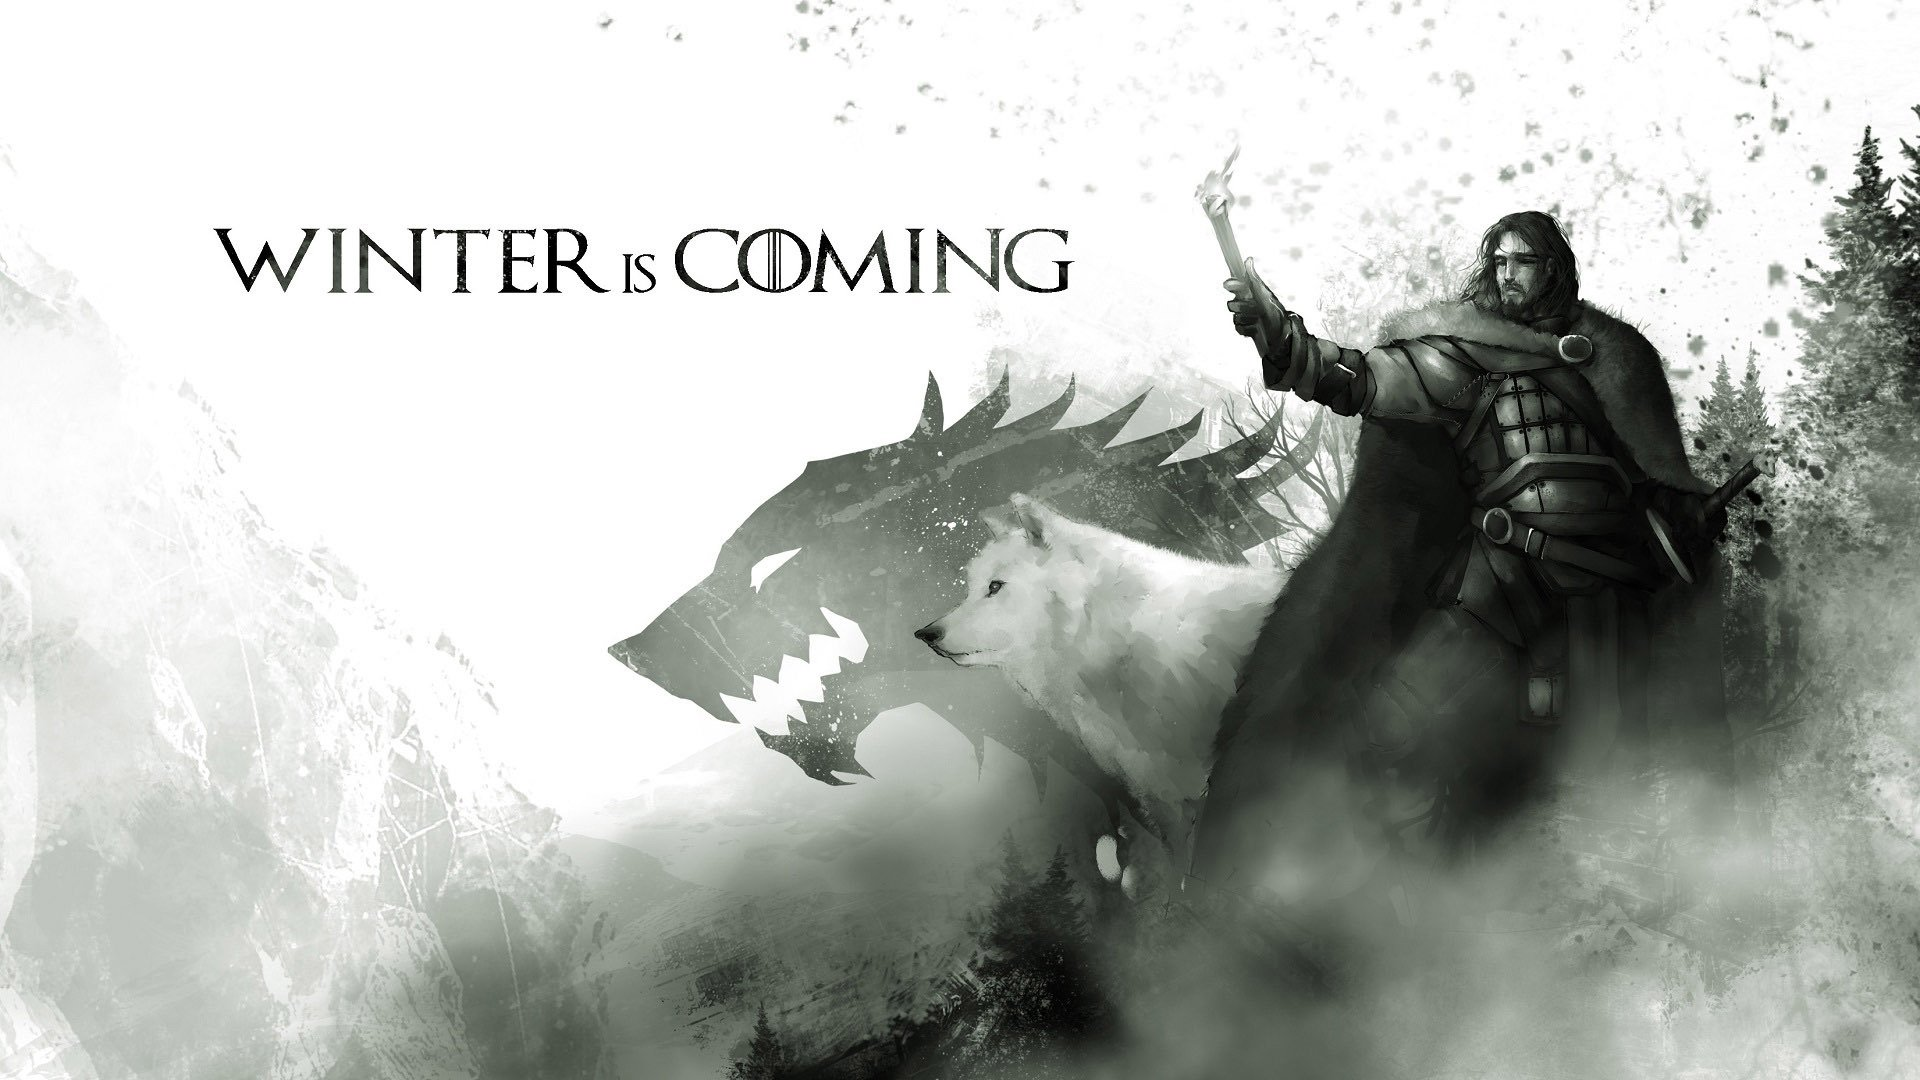 Game of Thrones Winter is Coming Wallpaper   MixHD wallpapers 1920x1080